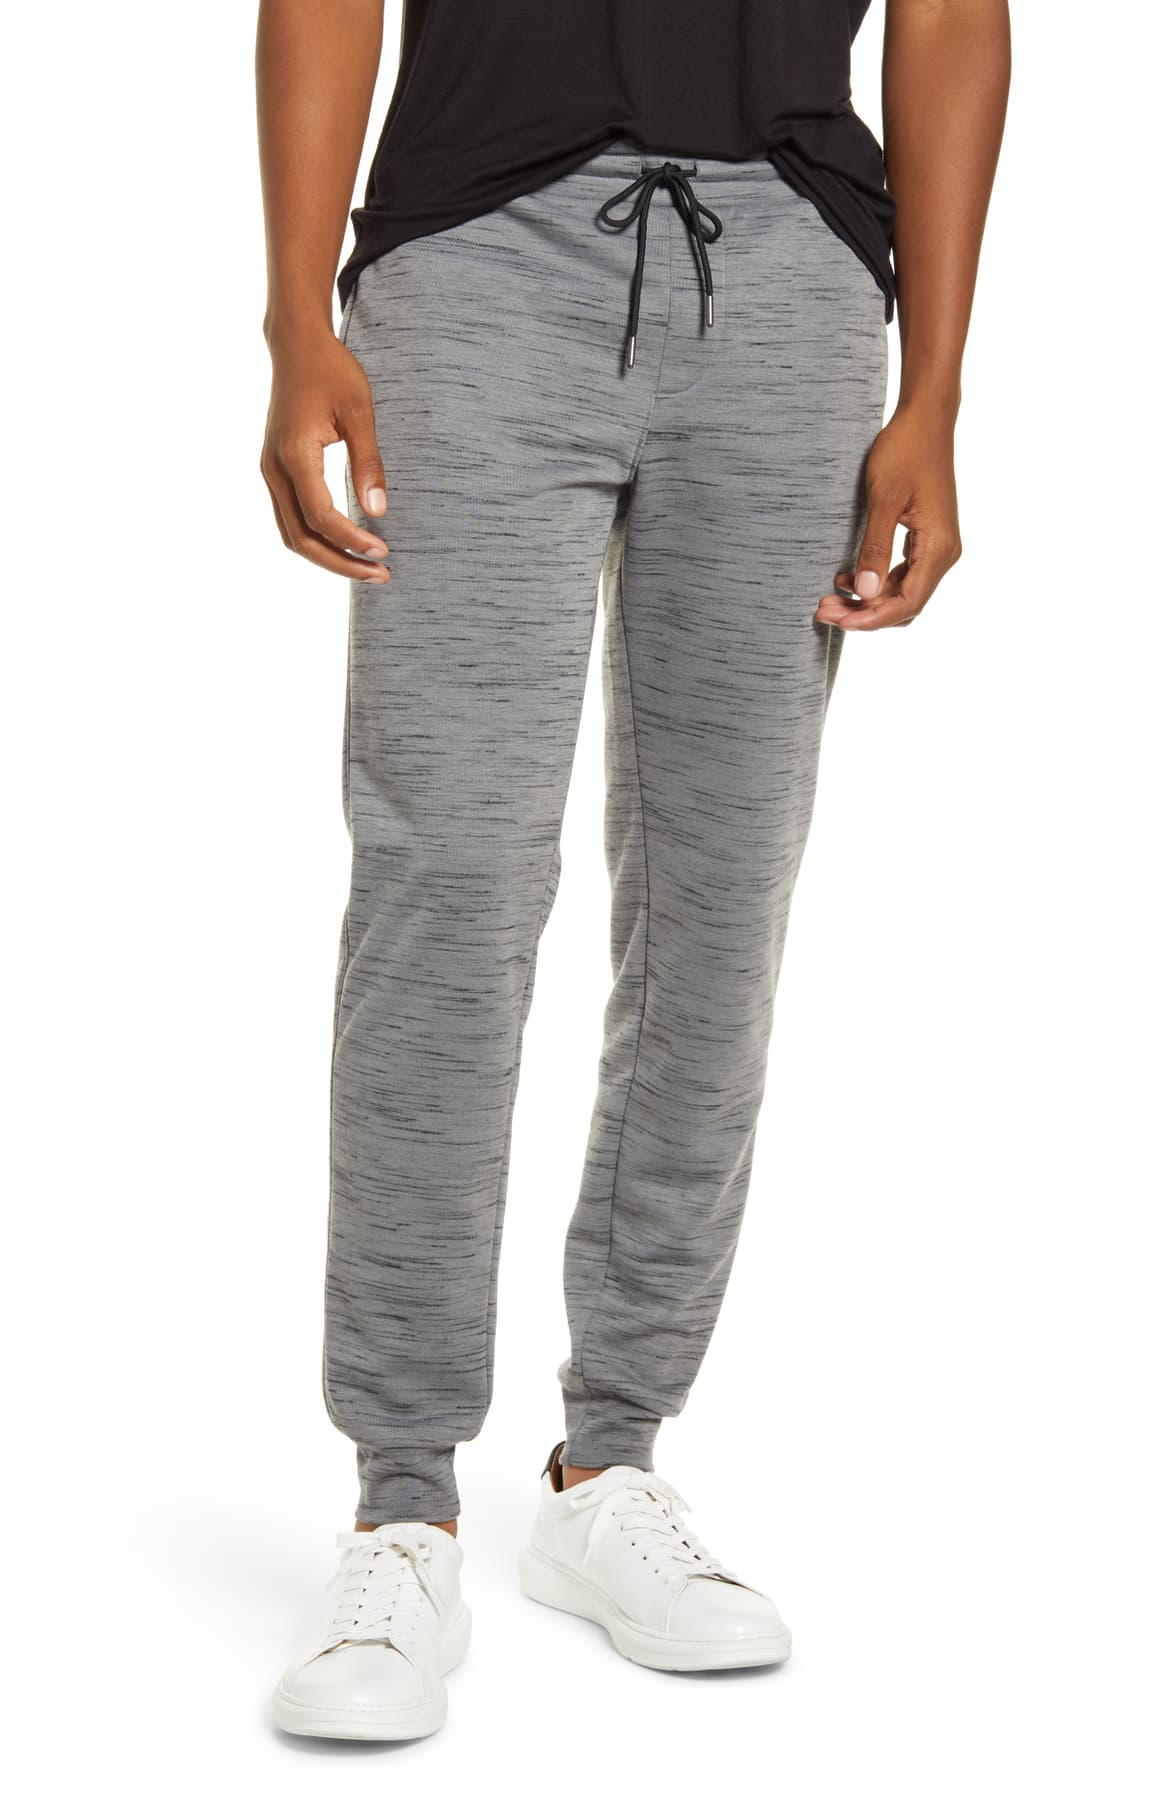 BP. x Alex Costa Men's Collection Launch Nordstrom Joggers